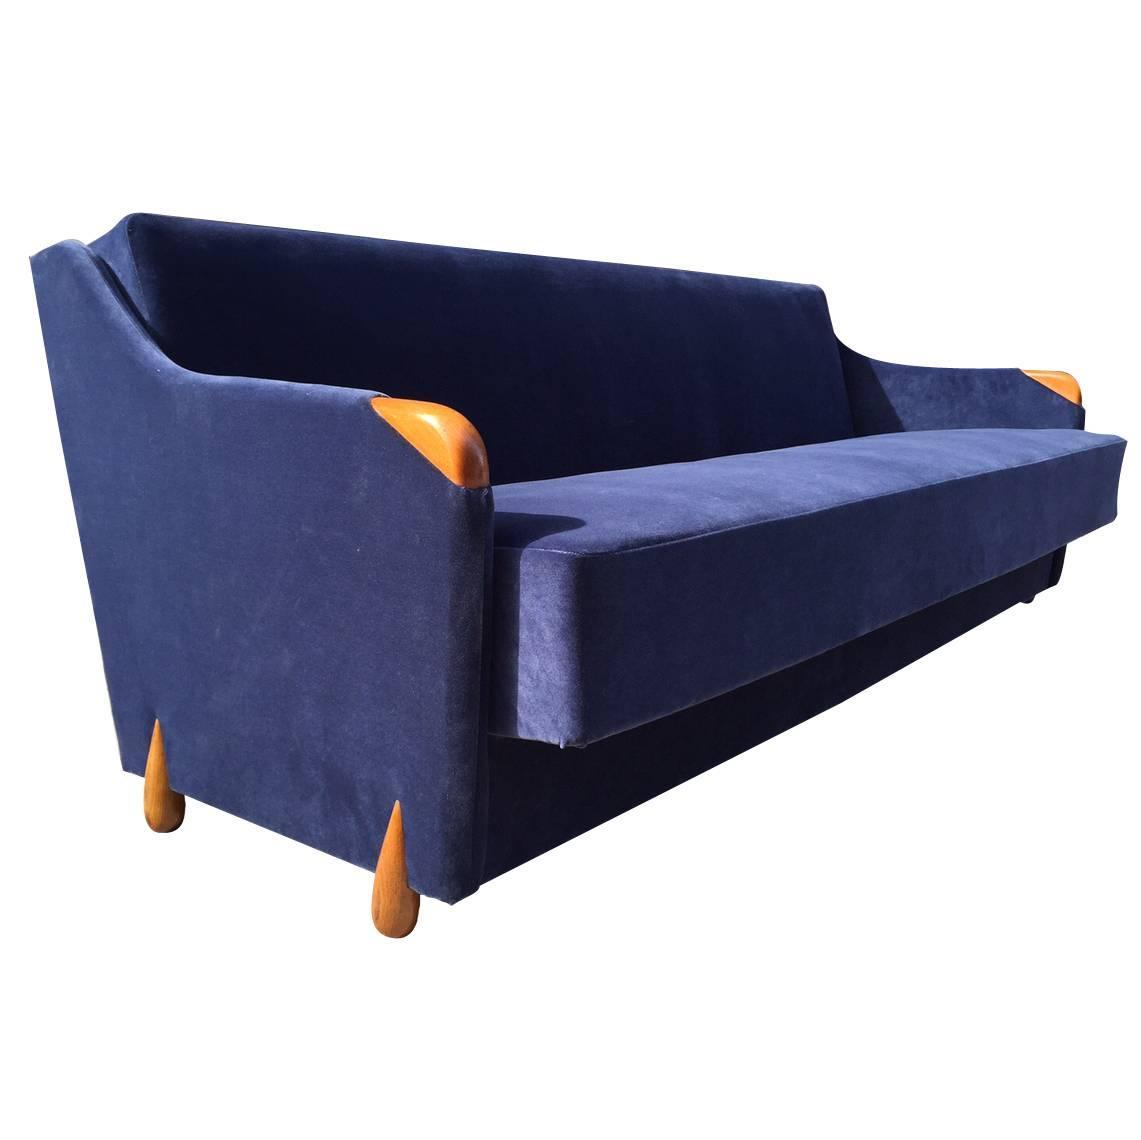 1950s blue velvet sleeper sofa for sale at 1stdibs for Blue sofas for sale